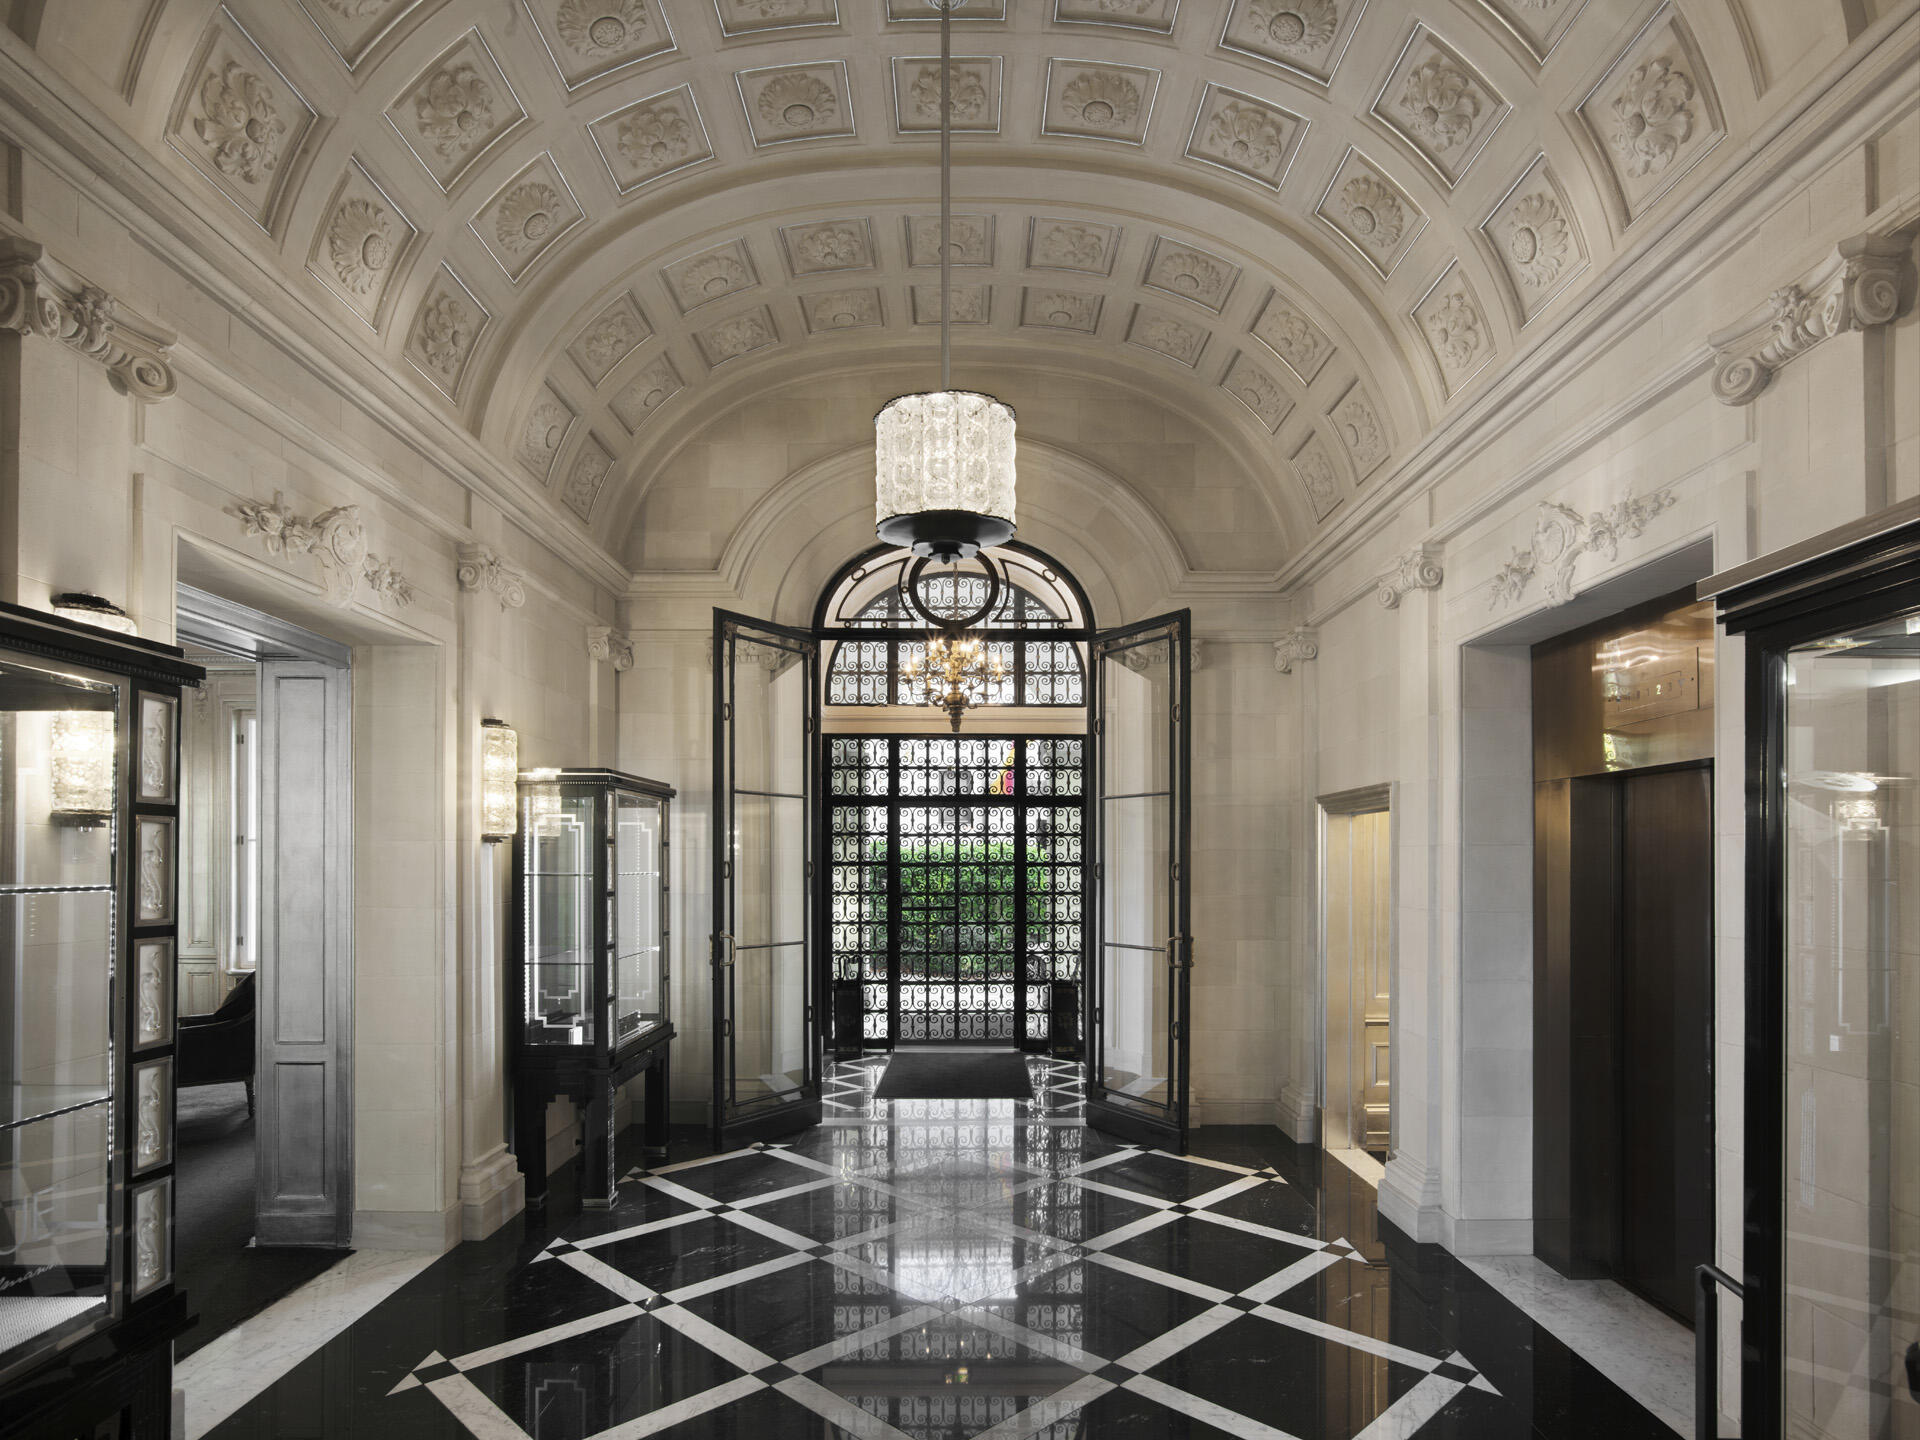 Lobby Entrance at Schlosshotel Berlin by Patrick Hellmann